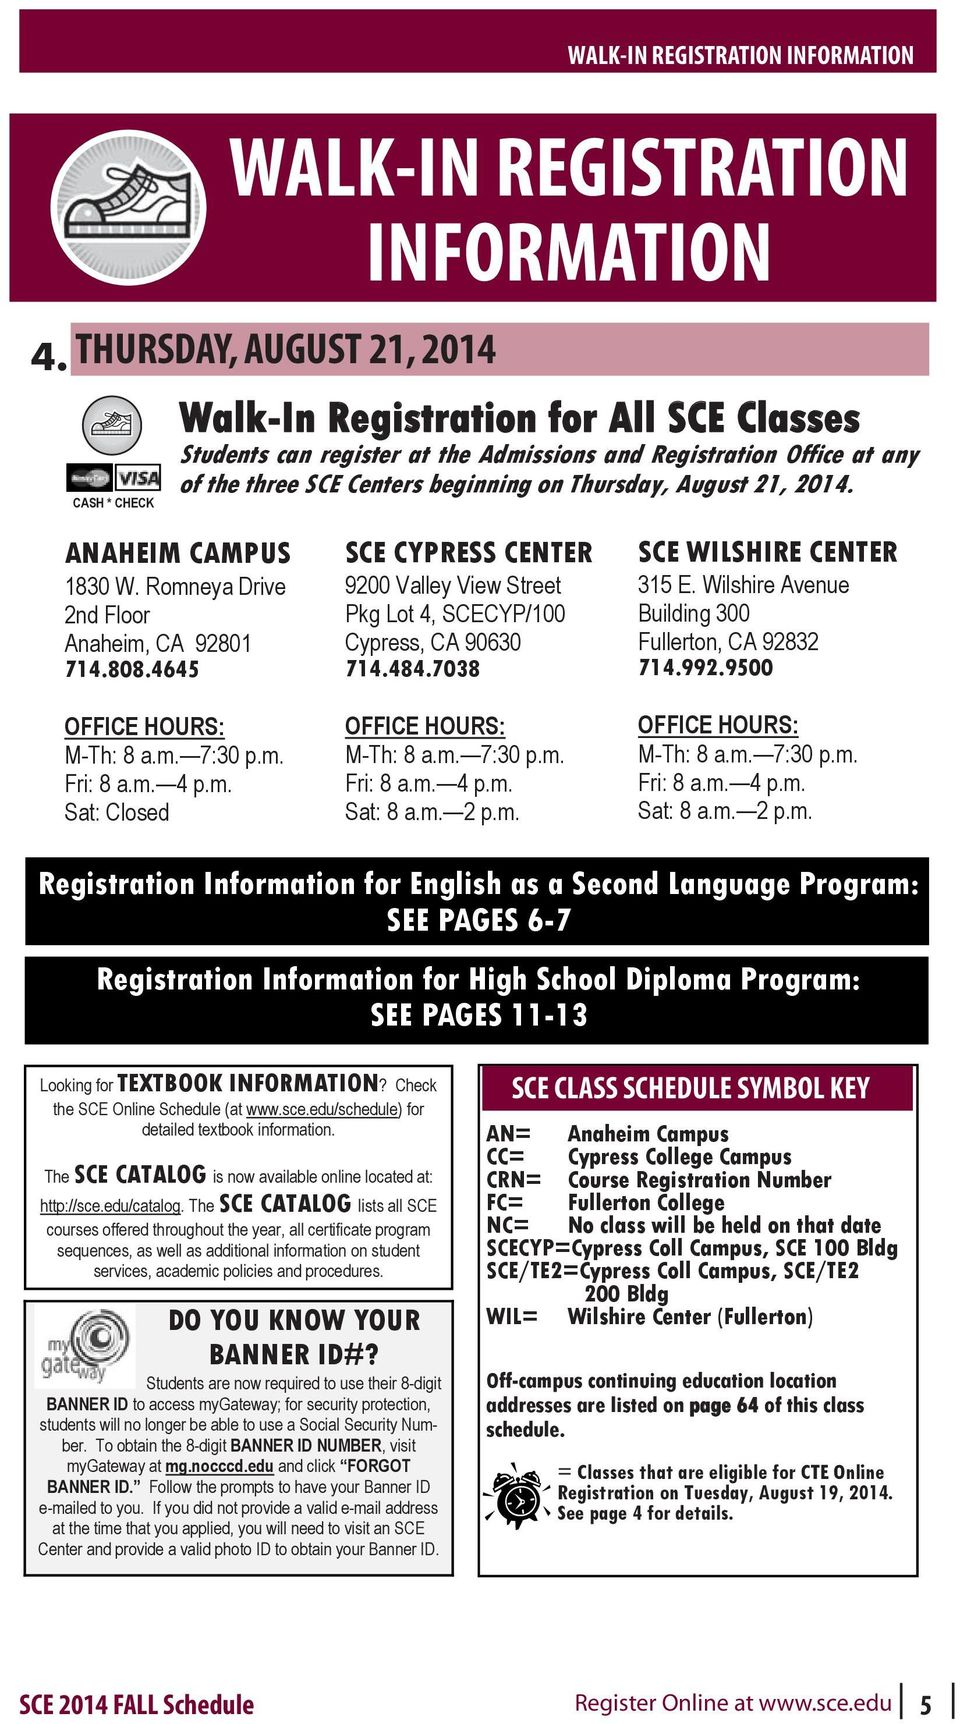 on Thursday, August 21, 2014. CASH * CHECK walk-in Registration WALK-IN REGISTRATION INFORMATION Information ANAHEIM CAMPUS 1830 W. Romneya Drive 2nd Floor Anaheim, CA 92801 714.808.